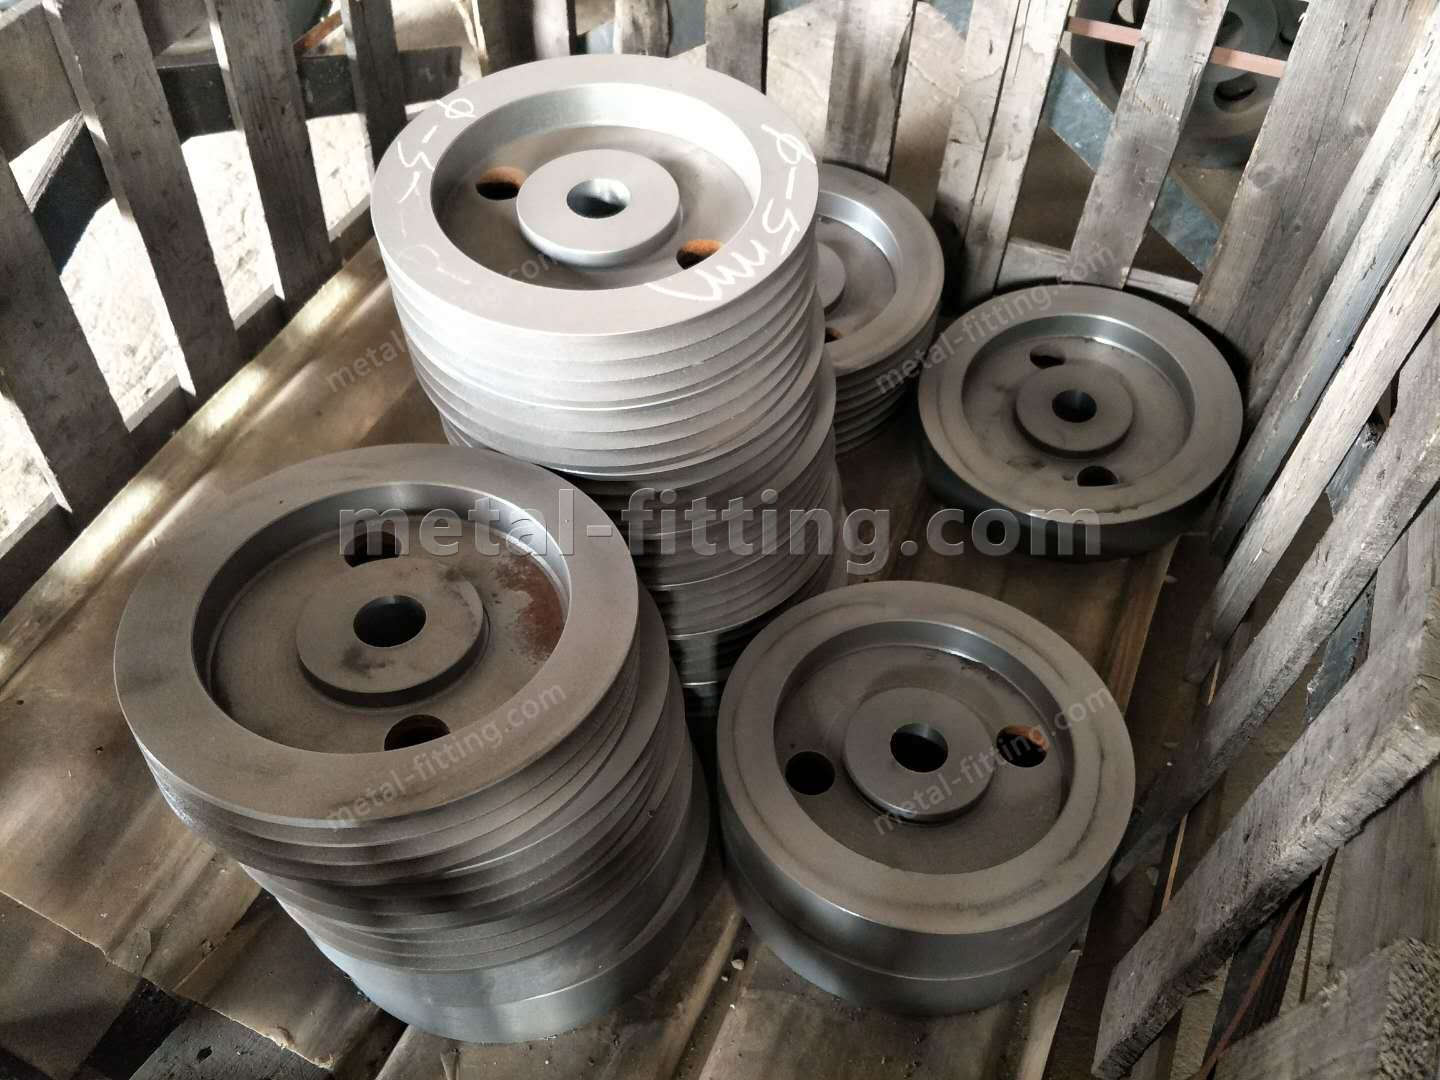 Casted iron Ring Gear and Pulley for concret Mixer-419545062536830546